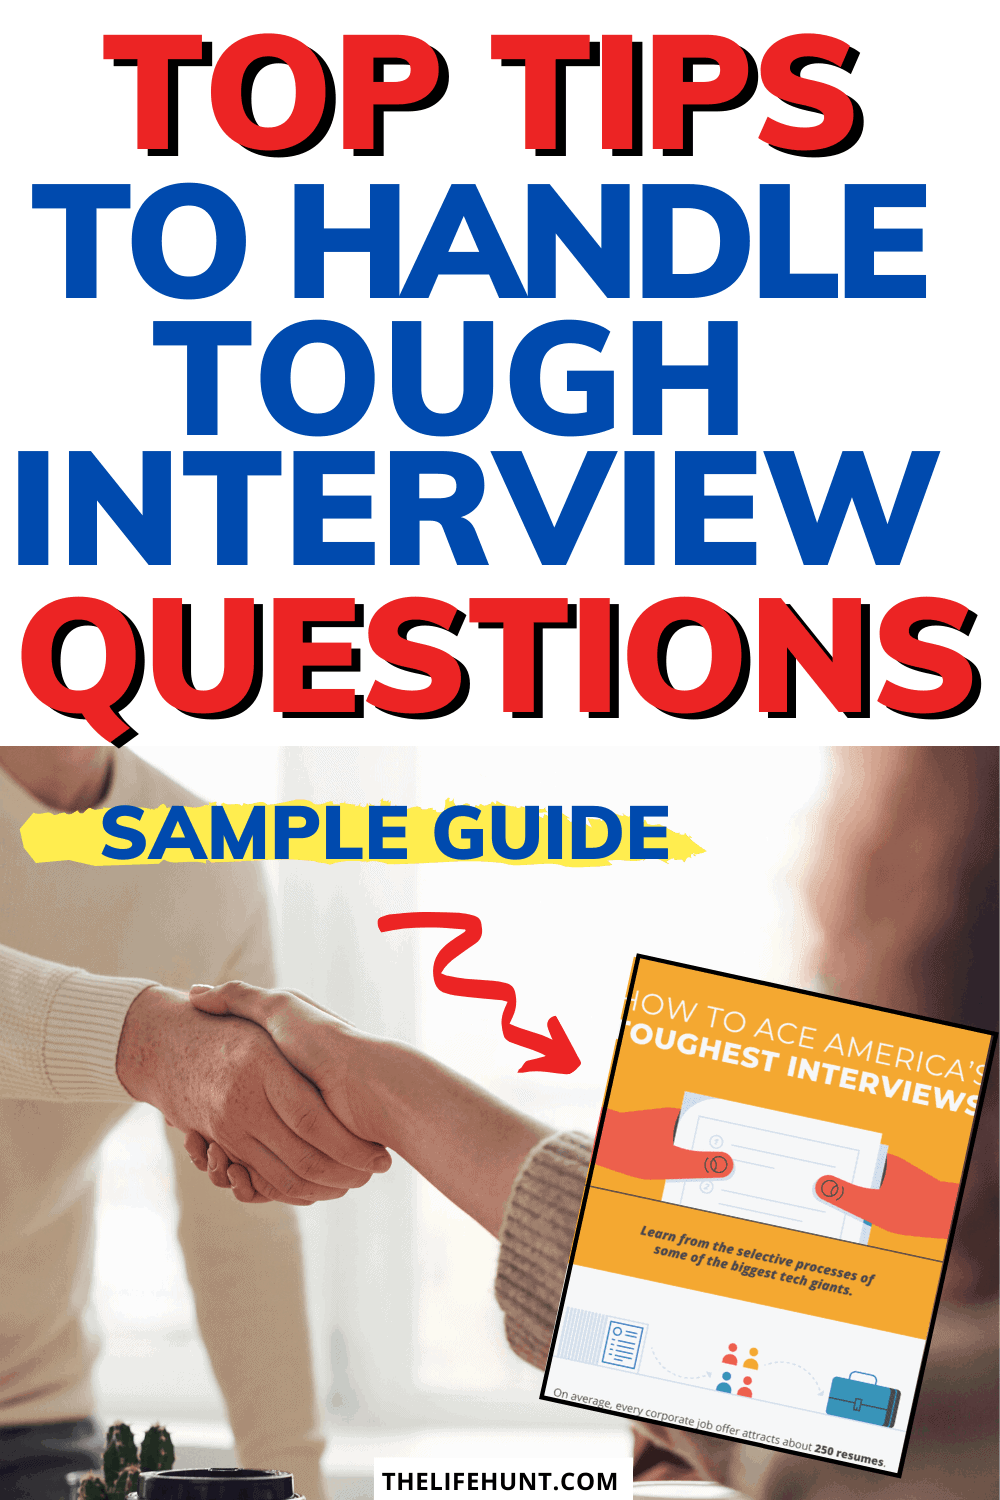 tough interview questions sample guide